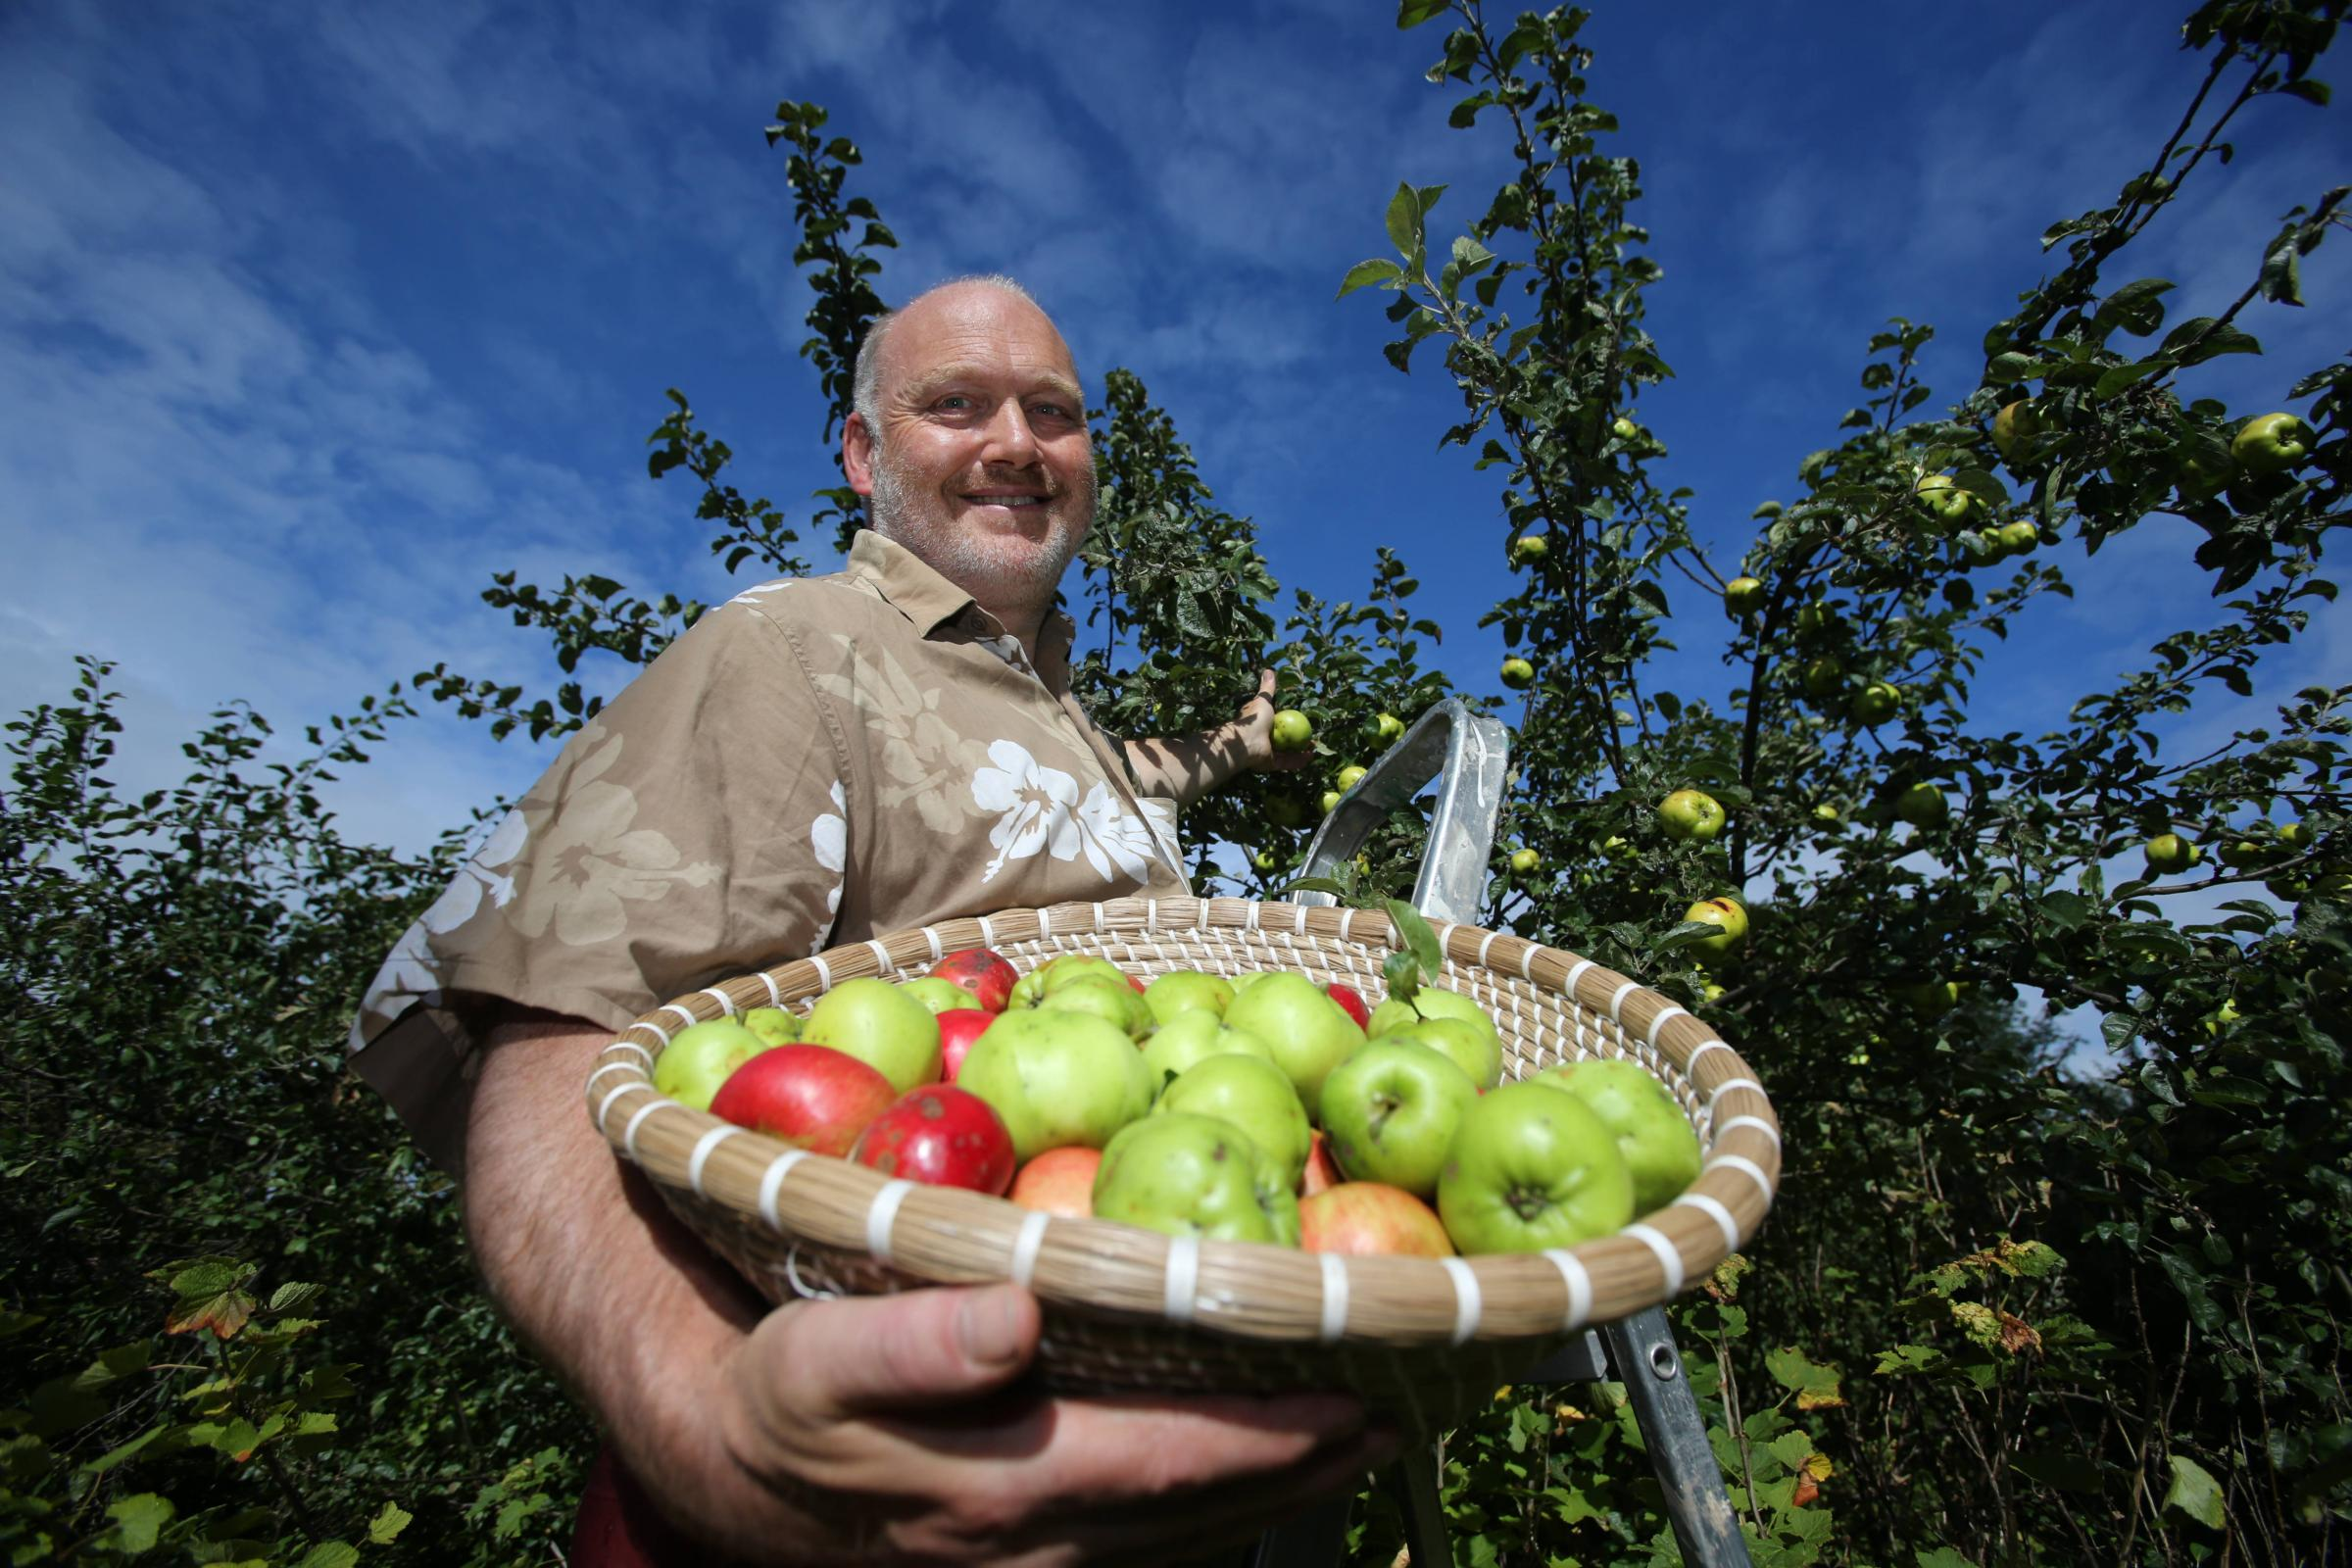 John Hancox picking apples at the launch of  Clyde Cider inThe Orchard inside the  Gorbals Rose Garden in the Gorbals Glasgow.Clyde Cider, made with best Glasgow and Clyde apples, will  be launched at the Scottish Parliament at the Holyrood Apple Day,Phot